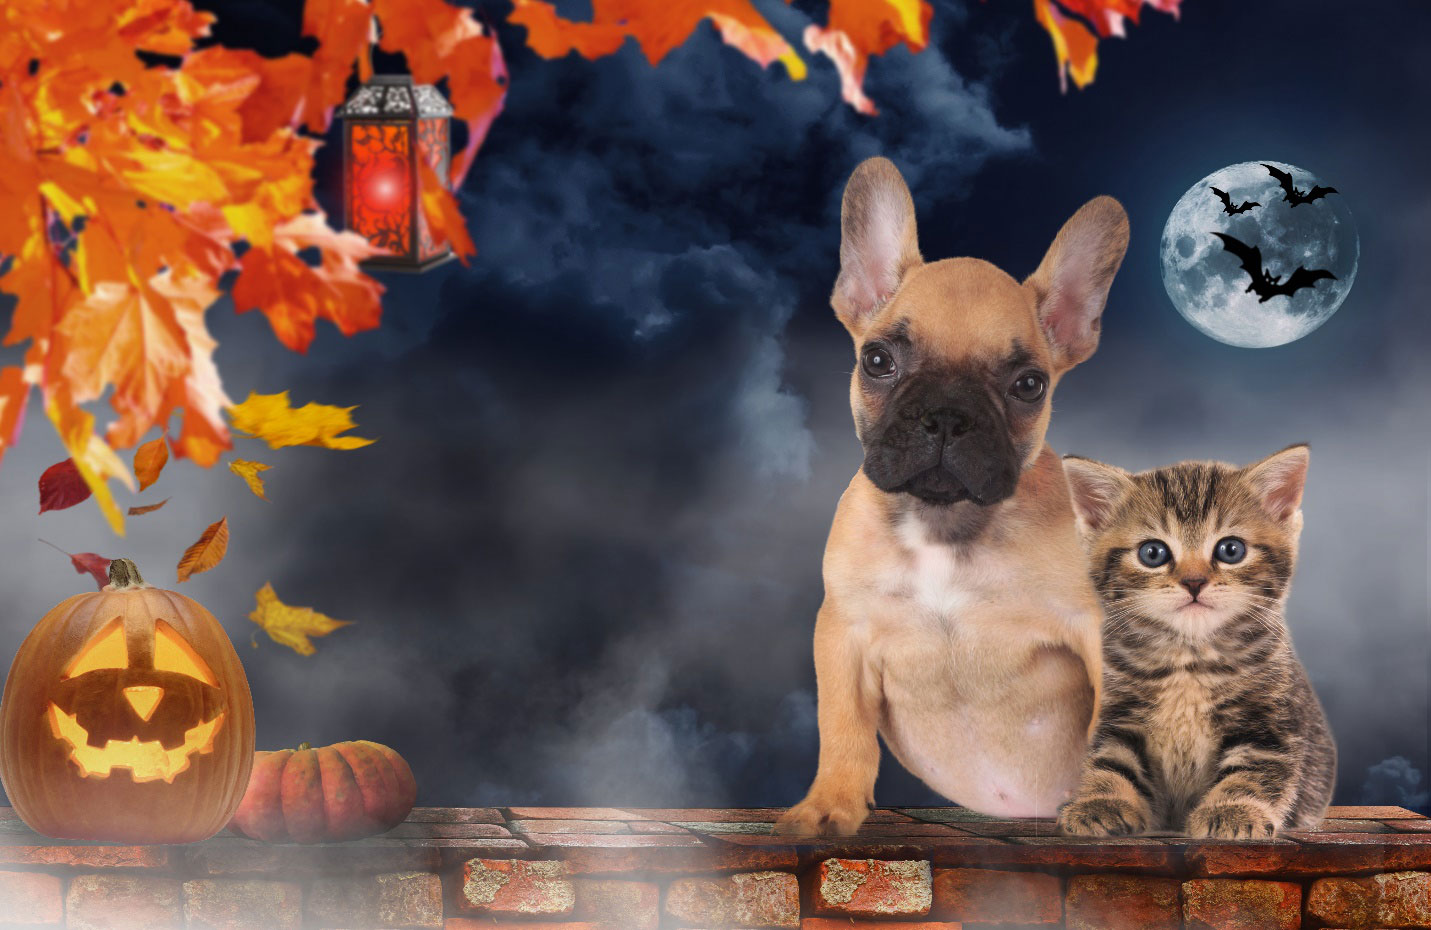 A group of pets on halloween